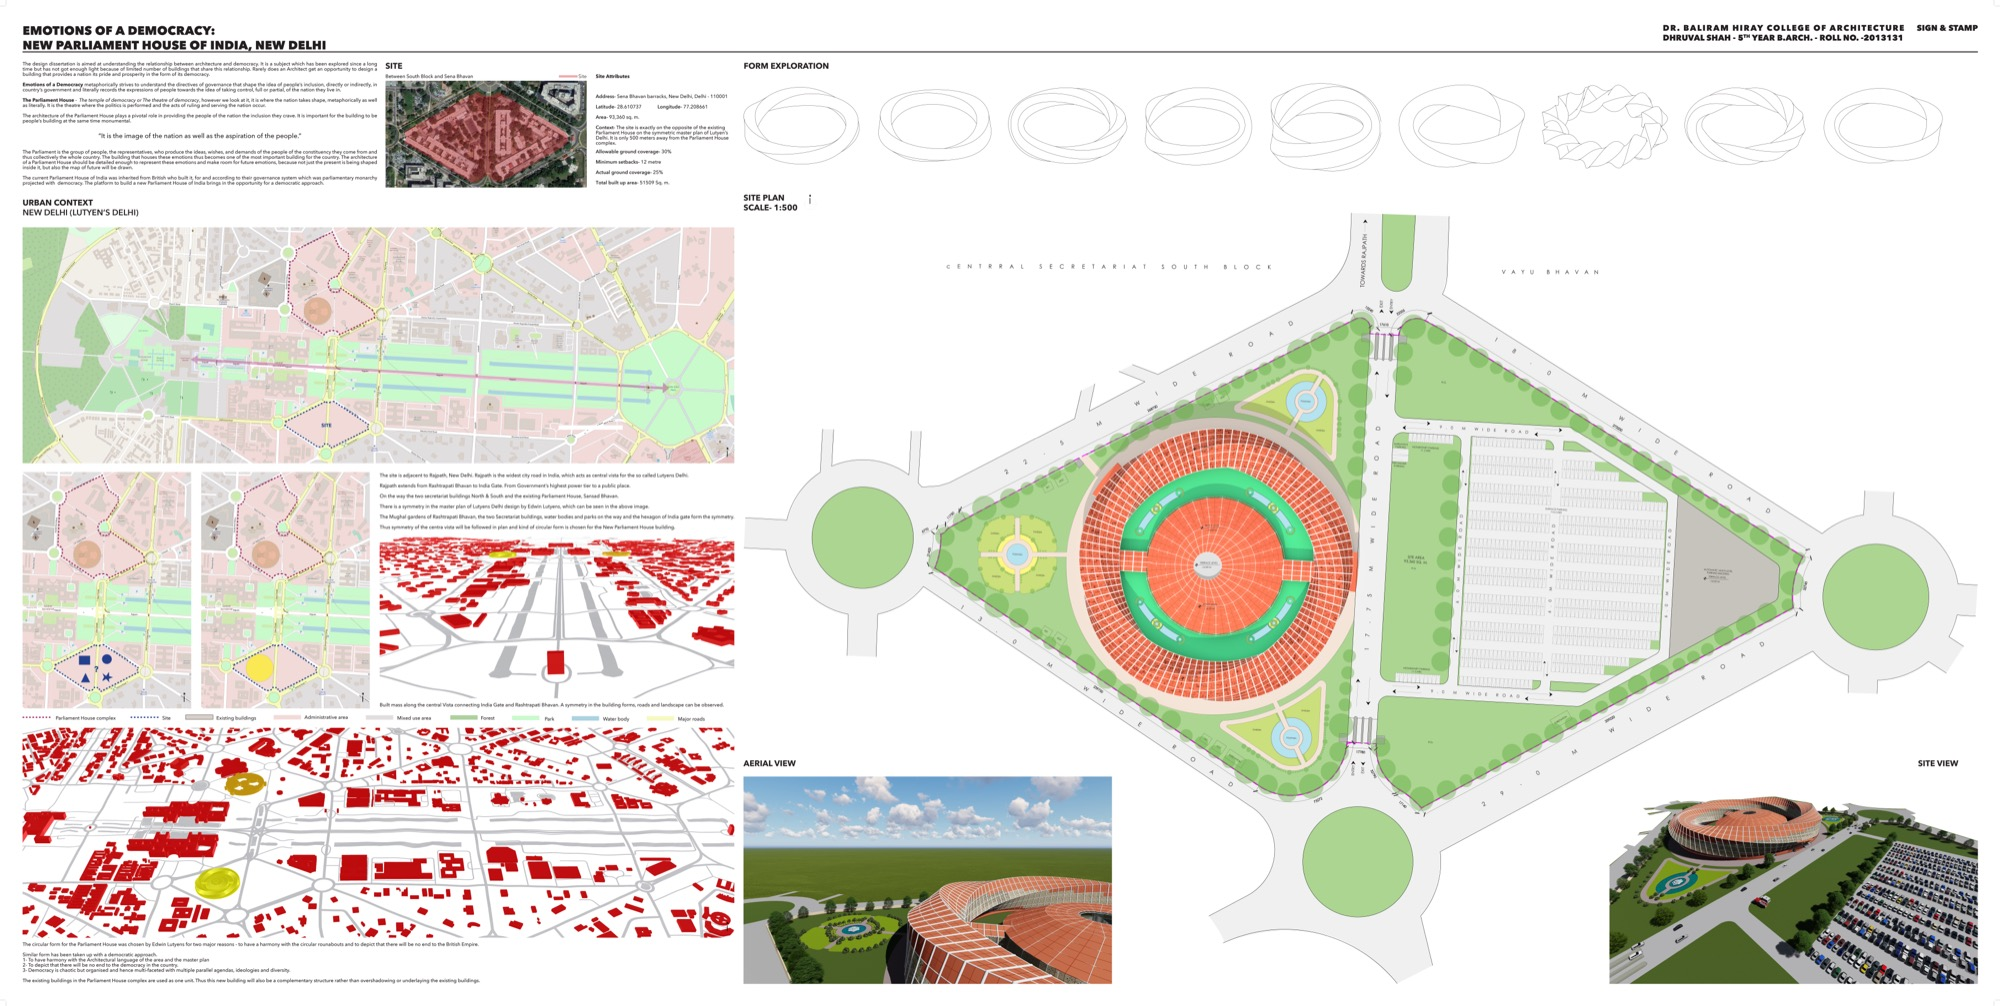 B.Arch Thesis: Emotions of a Democracy: New Parliament House of India, New Delhi Dhruval Shah 9